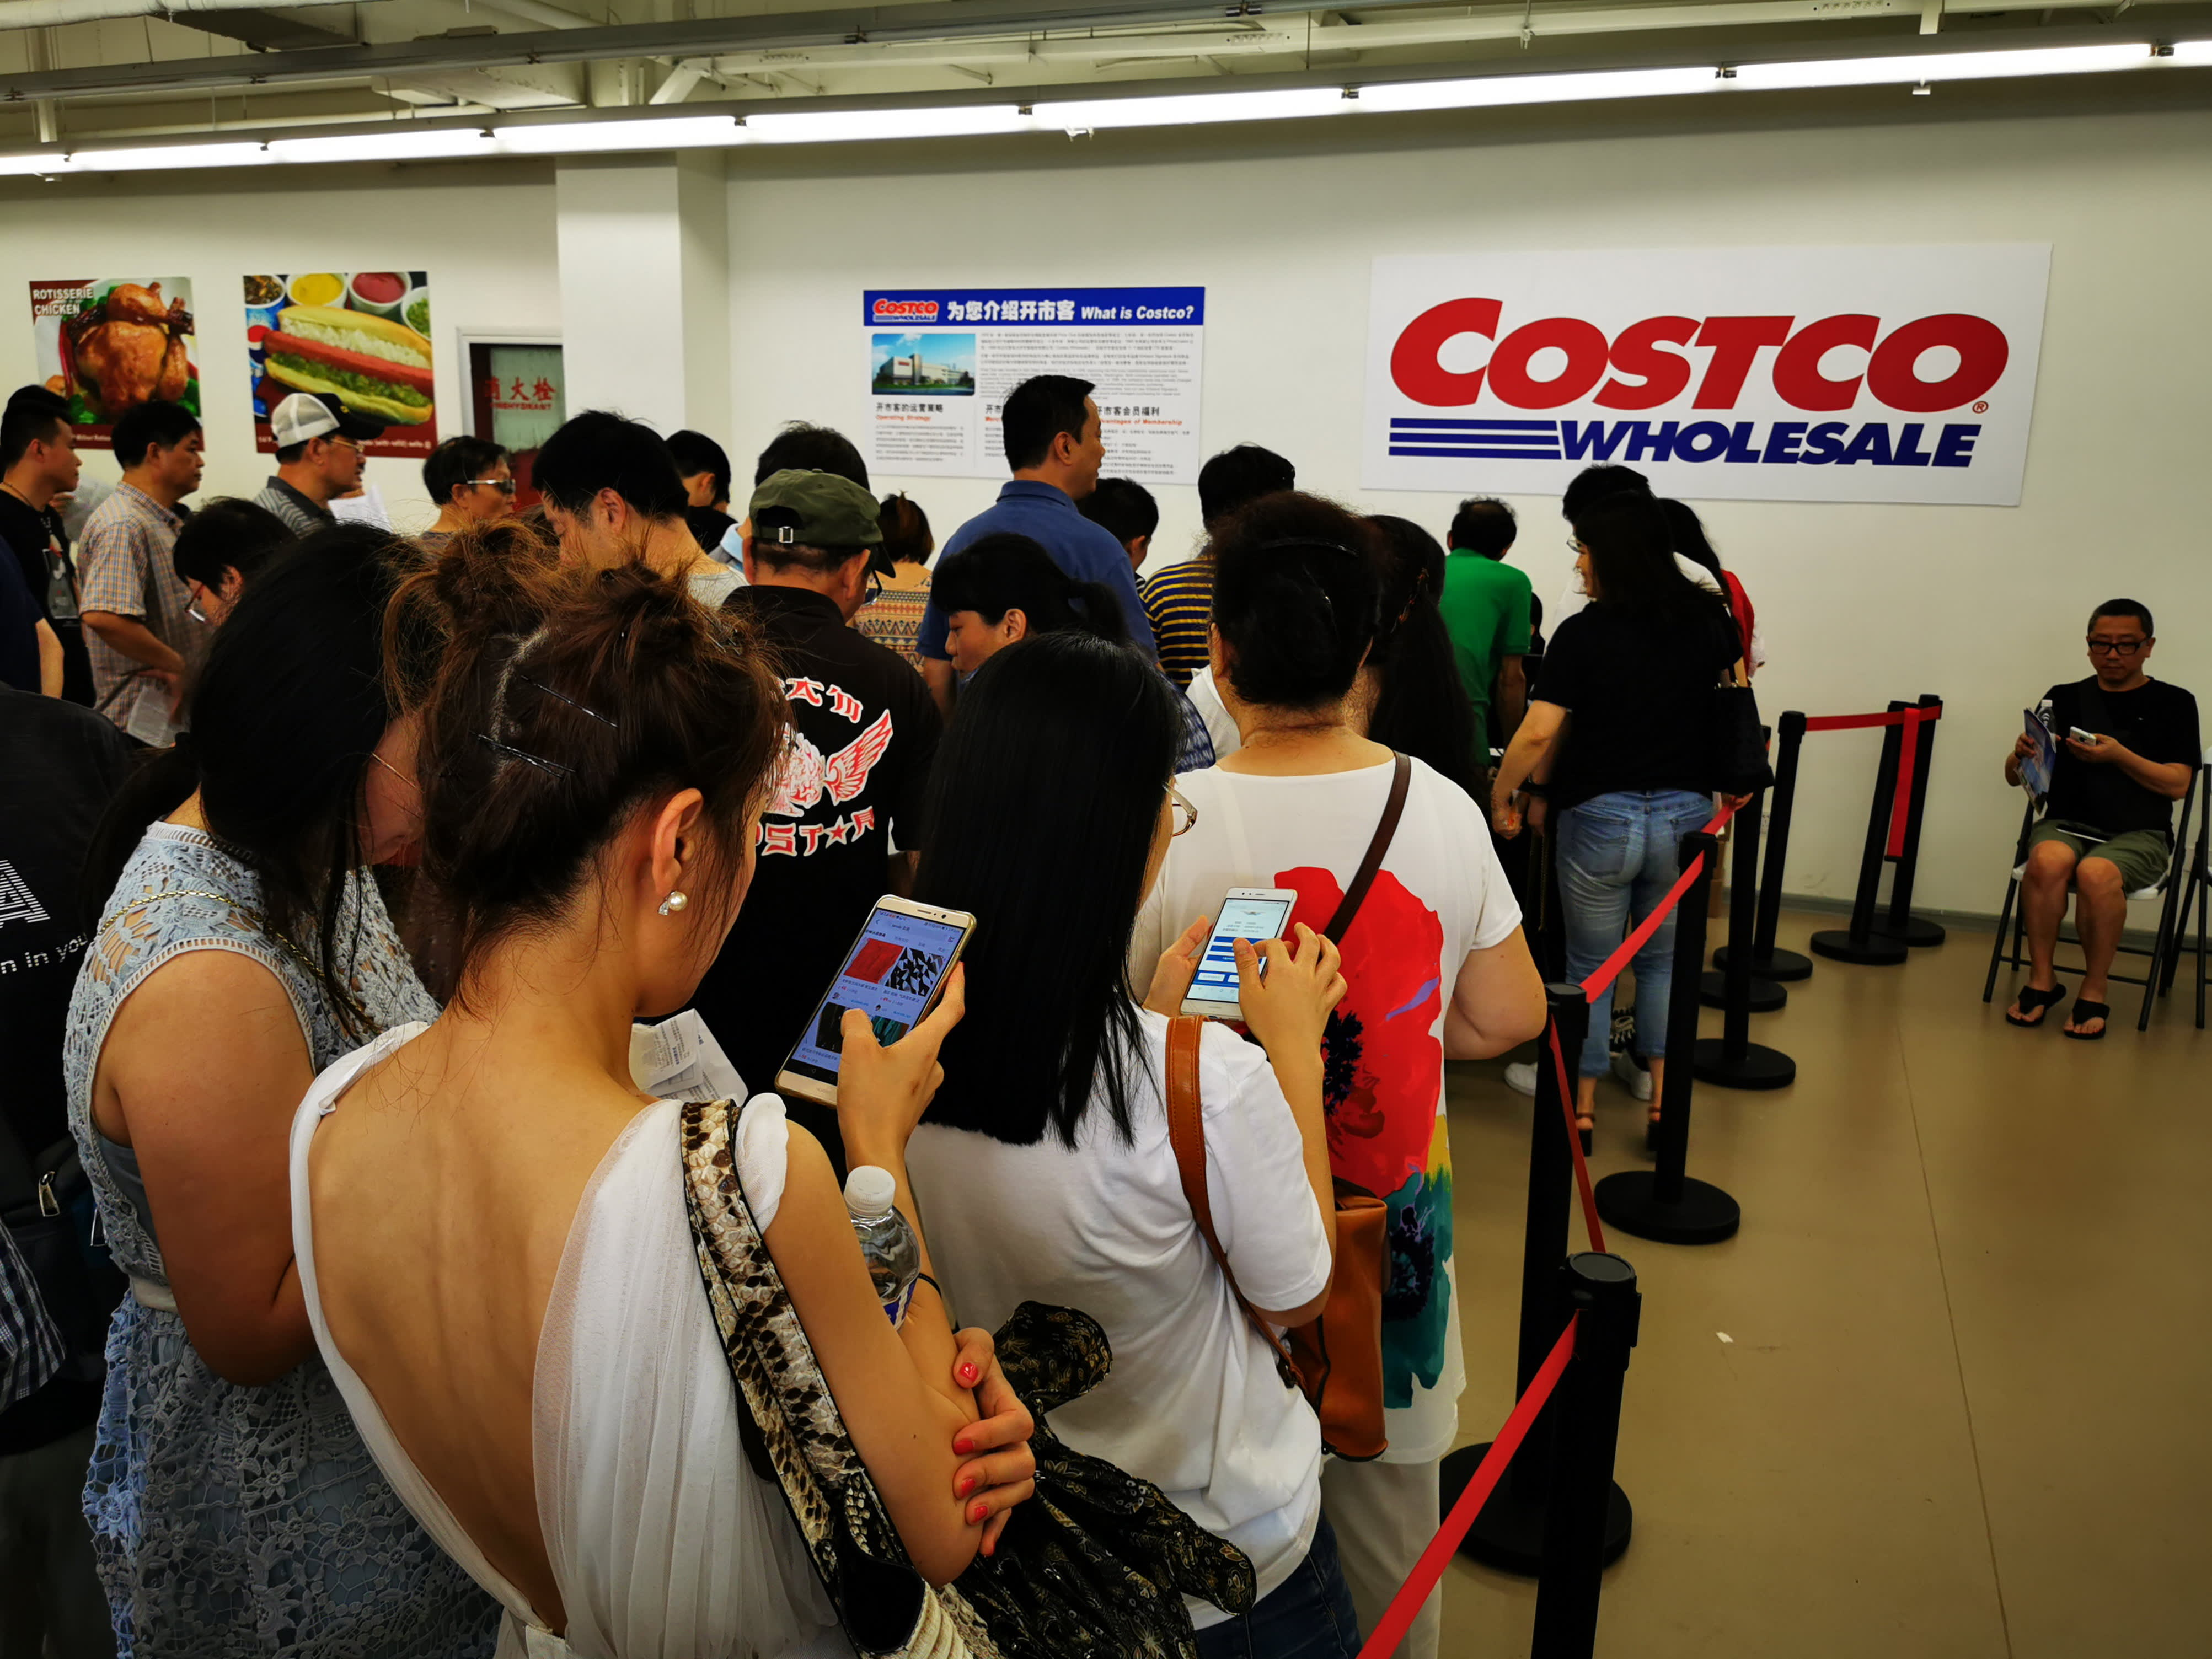 d92f05814265e Here's why China embraced Costco, but spurned Amazon and Tesco - The ...